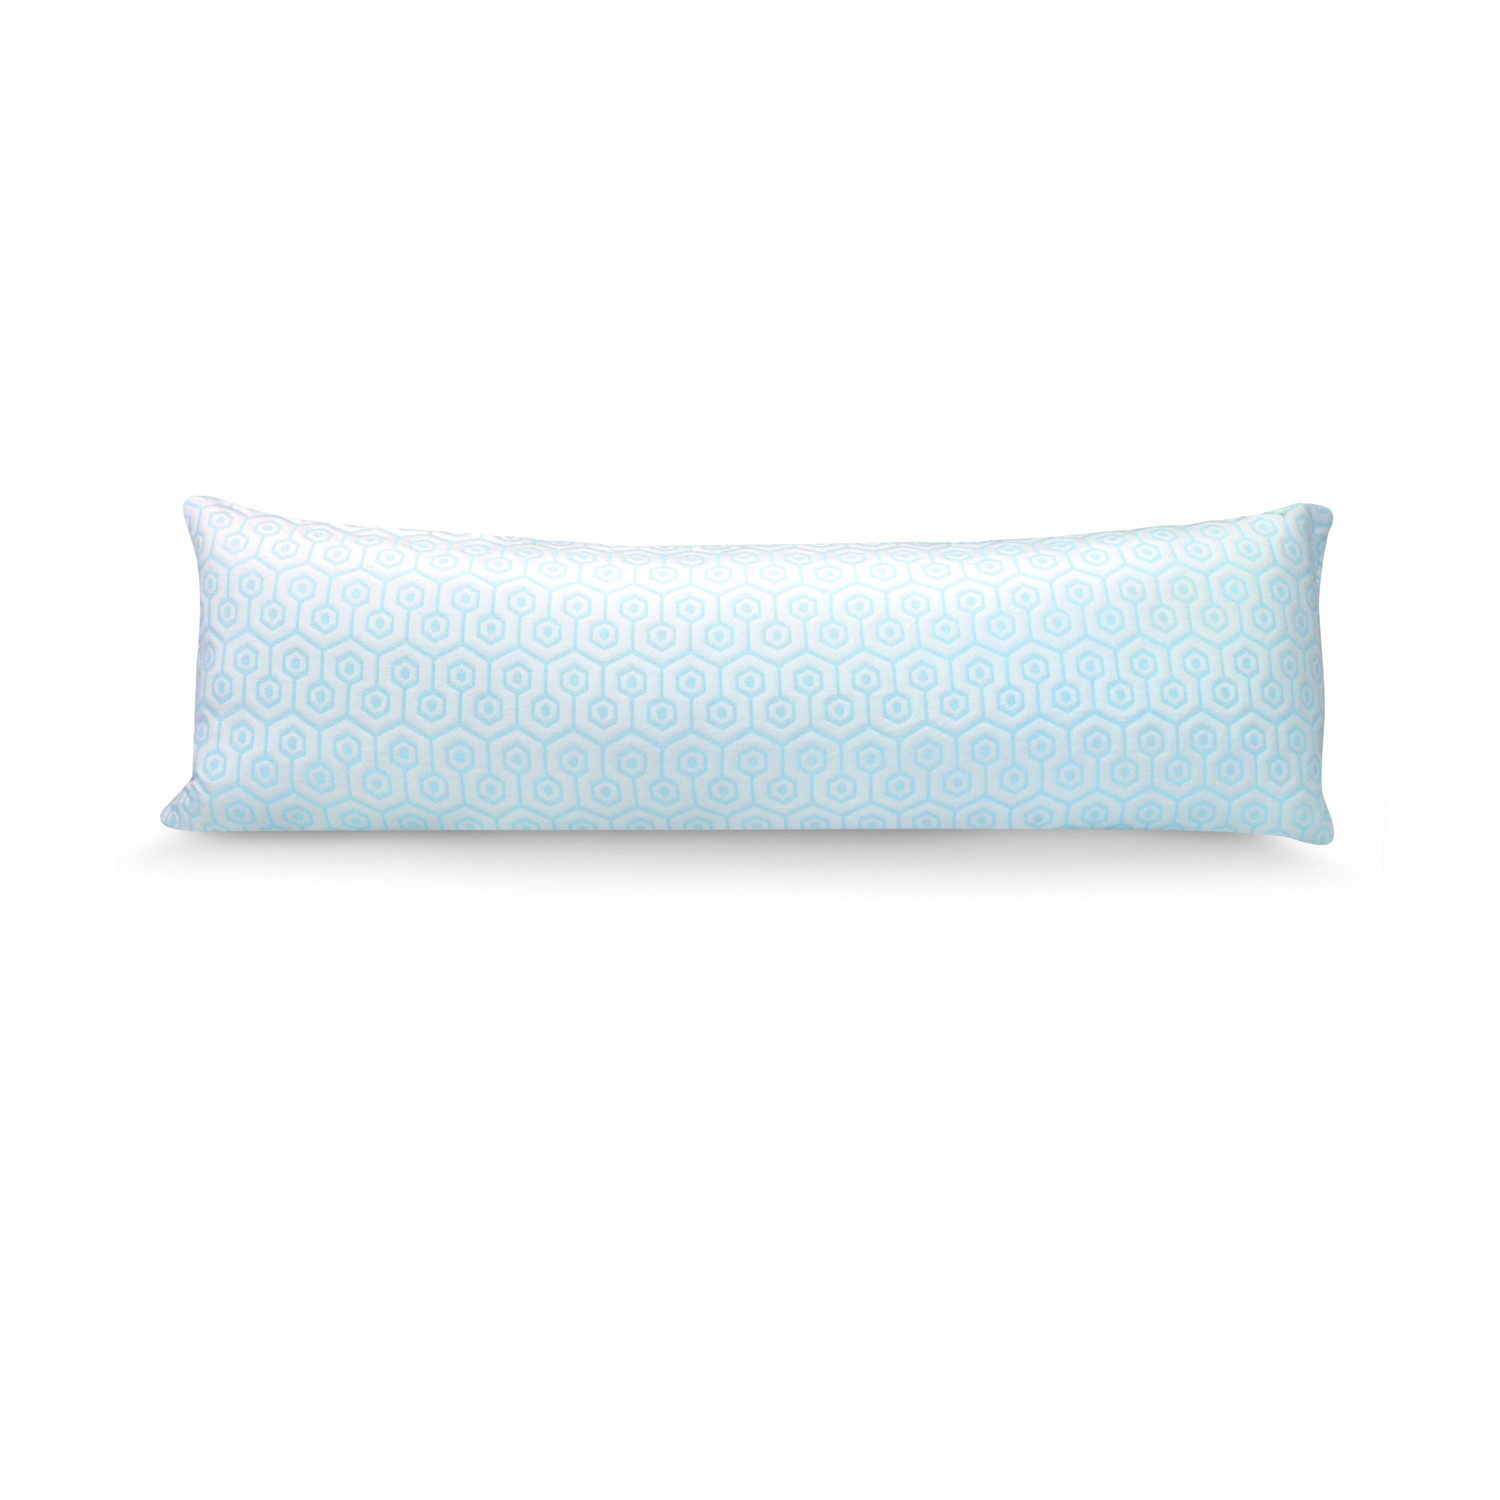 hydrologie cooling body pillow